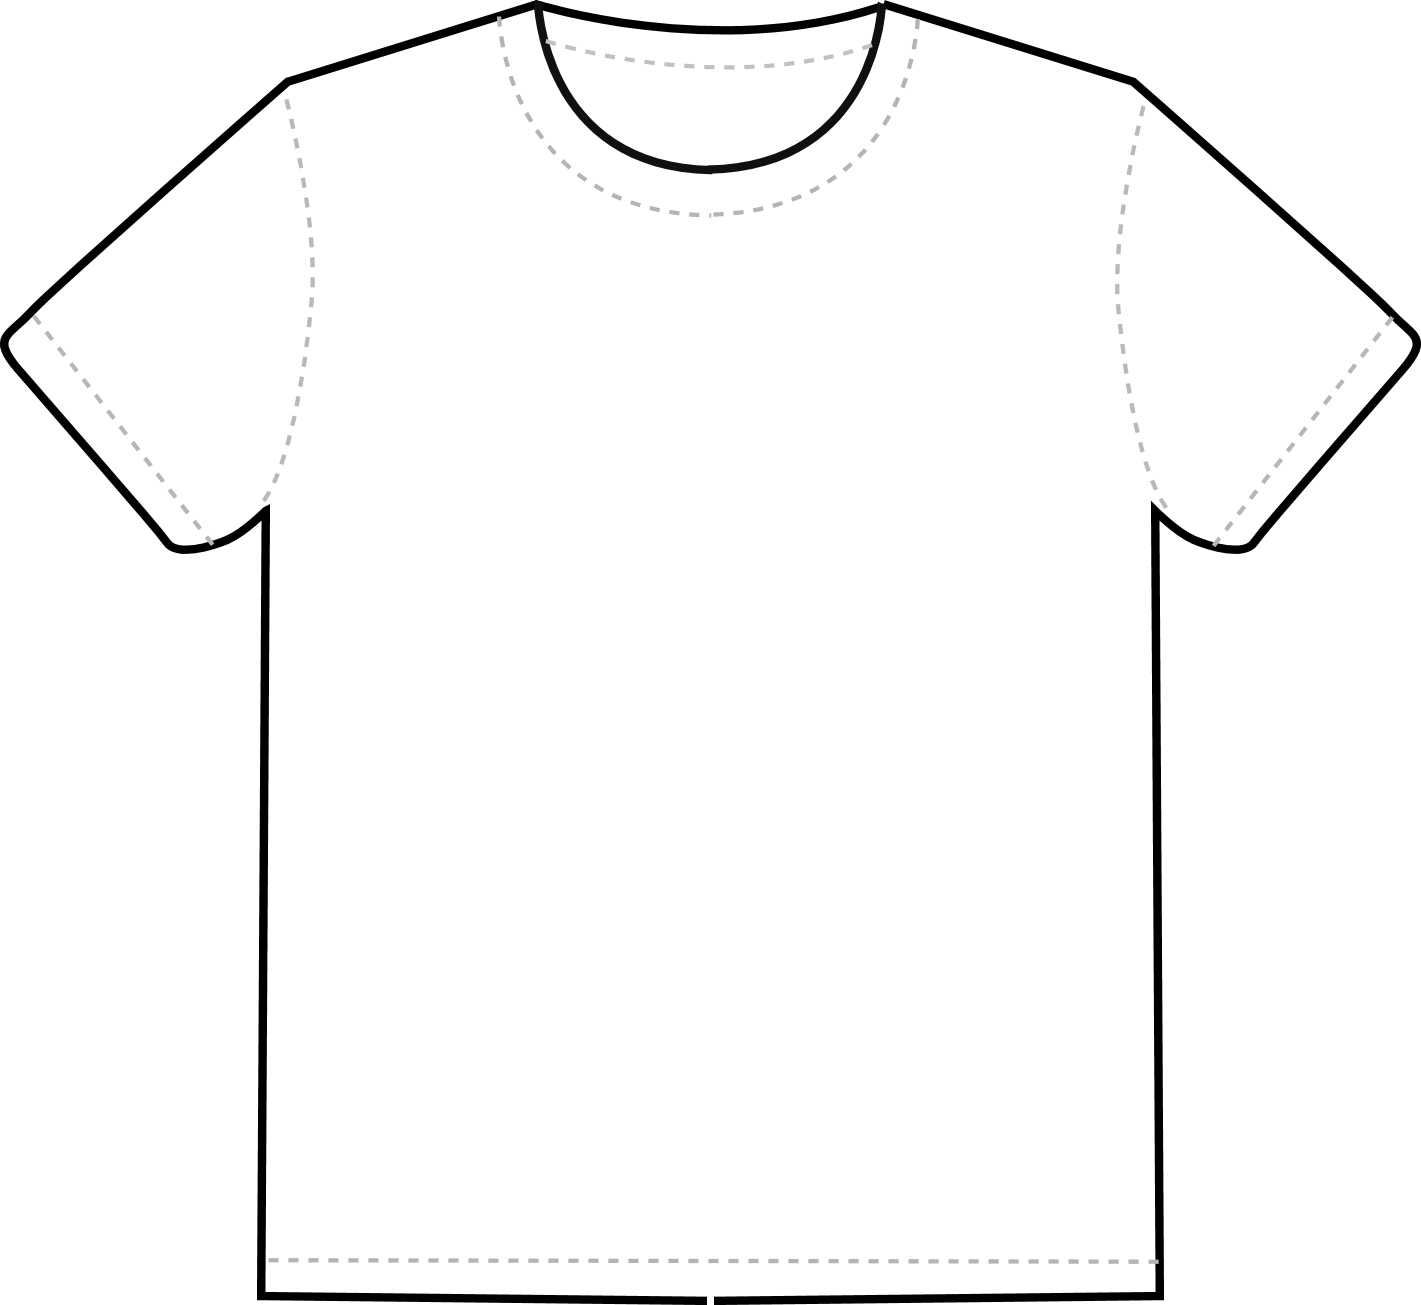 Free T Shirt Template Printable, Download Free Clip Art With Blank Tshirt Template Printable